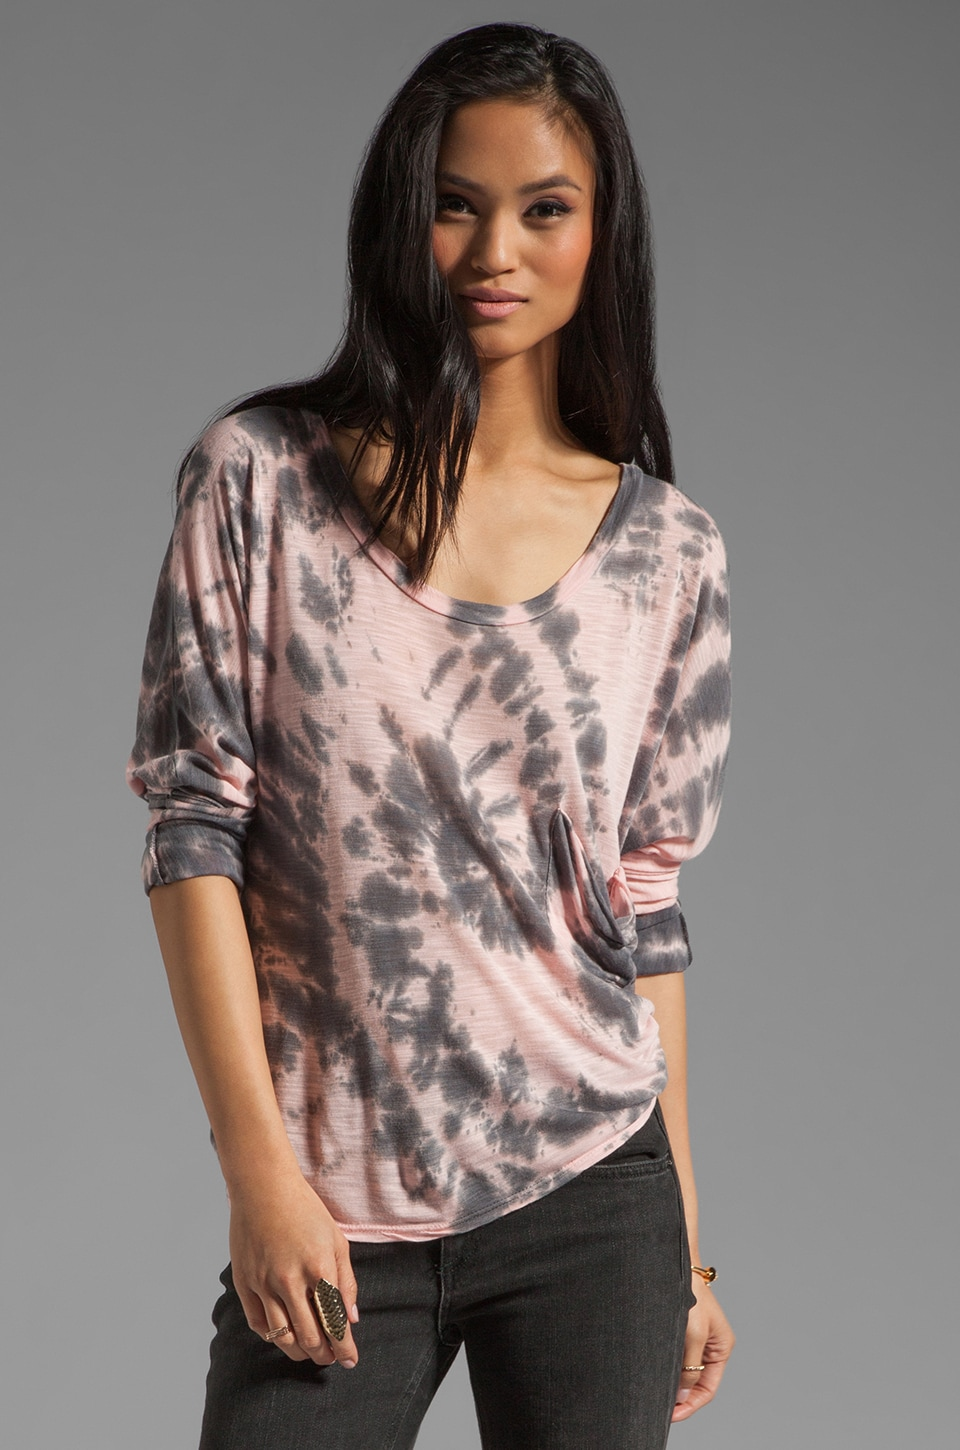 Blue Life Marteeni Top in Pink Tie Dye